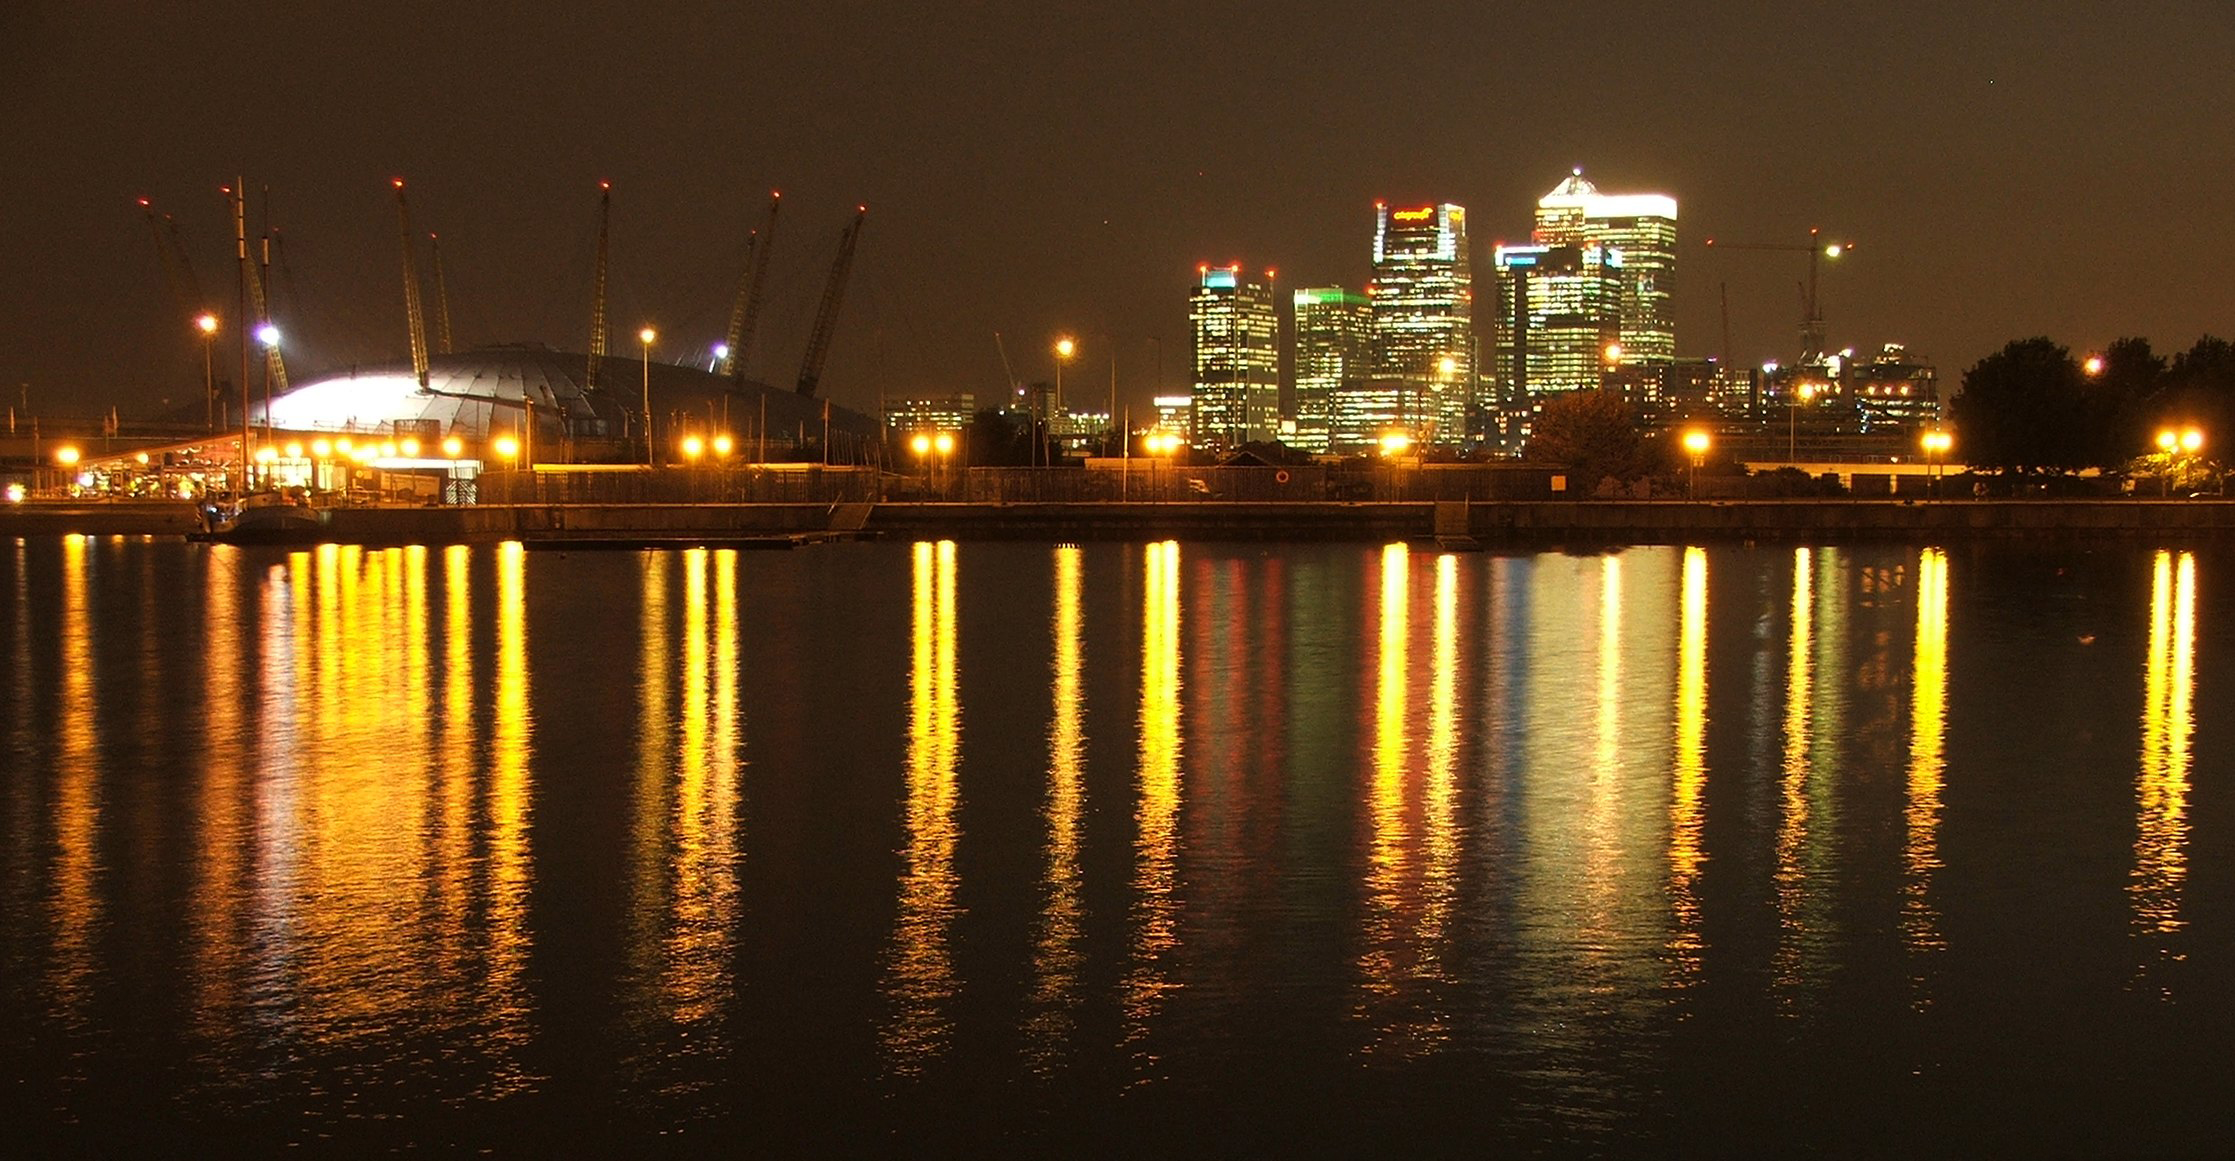 Museum of London Docklands: Hours, Address, Museum of London Docklands Reviews: 5/5